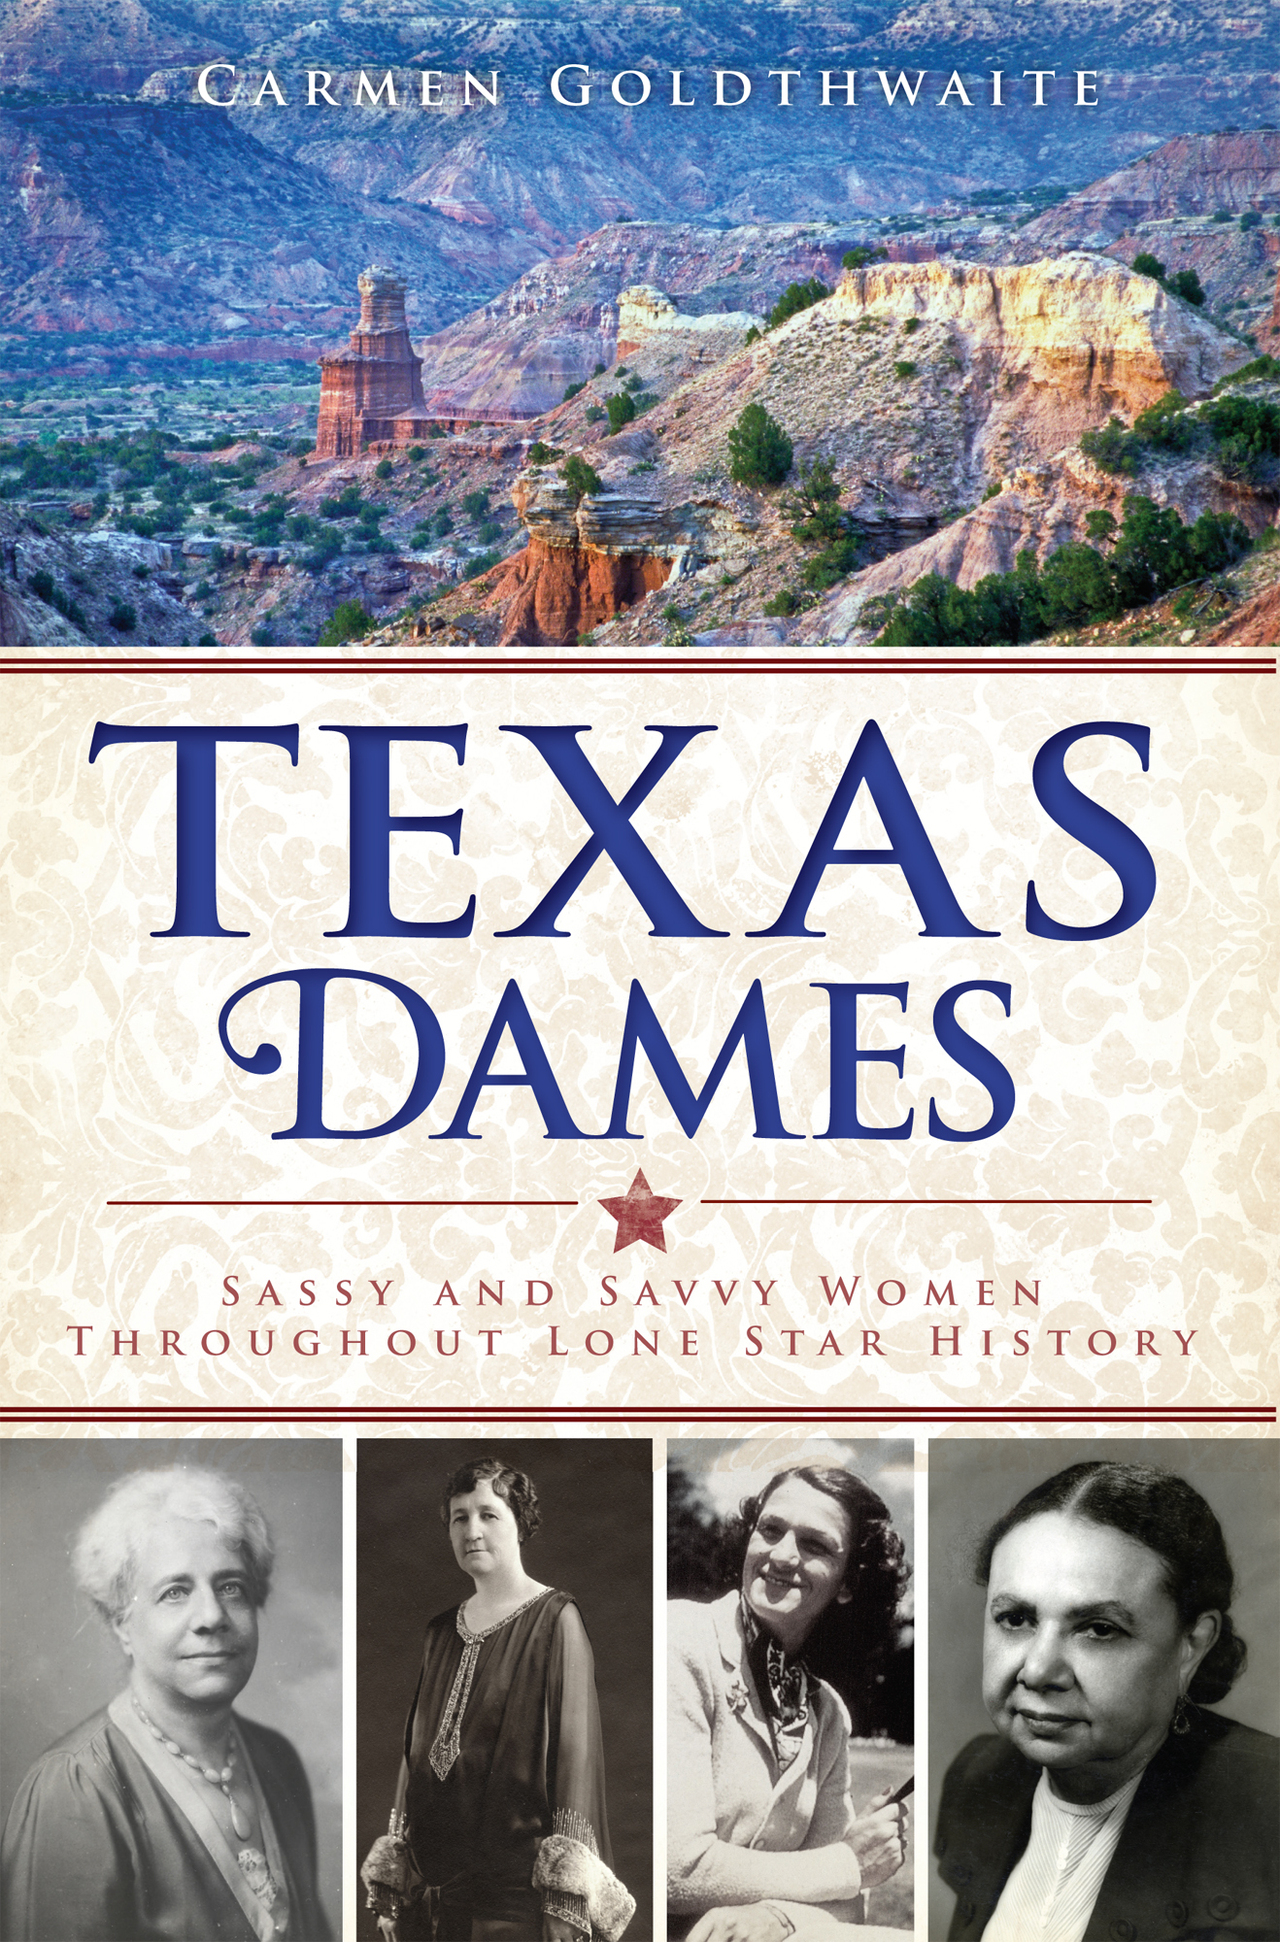 Tx dames front cover jpeg